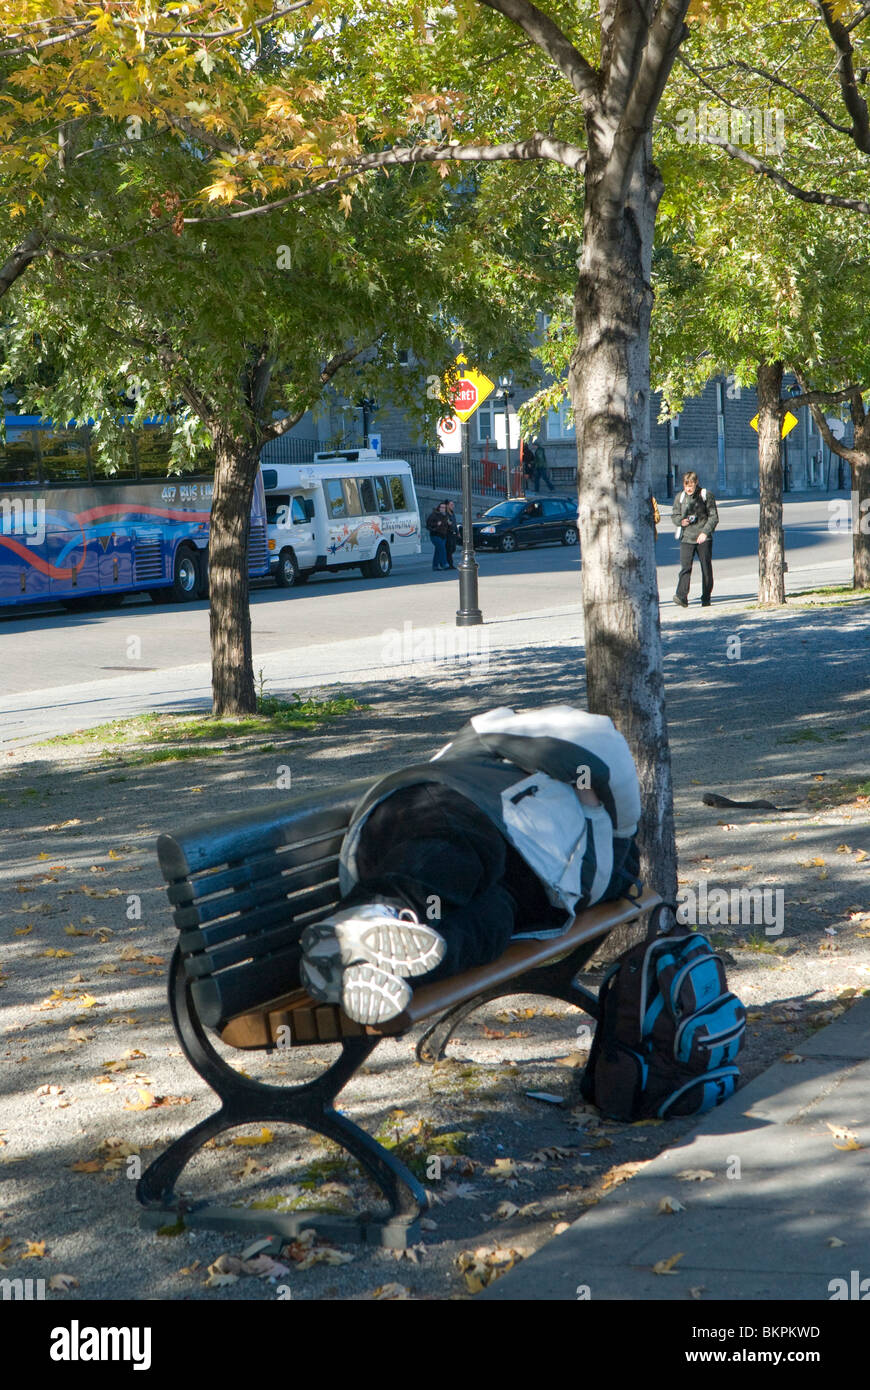 Homeless person sleeping on a bench Montreal Canada - Stock Image